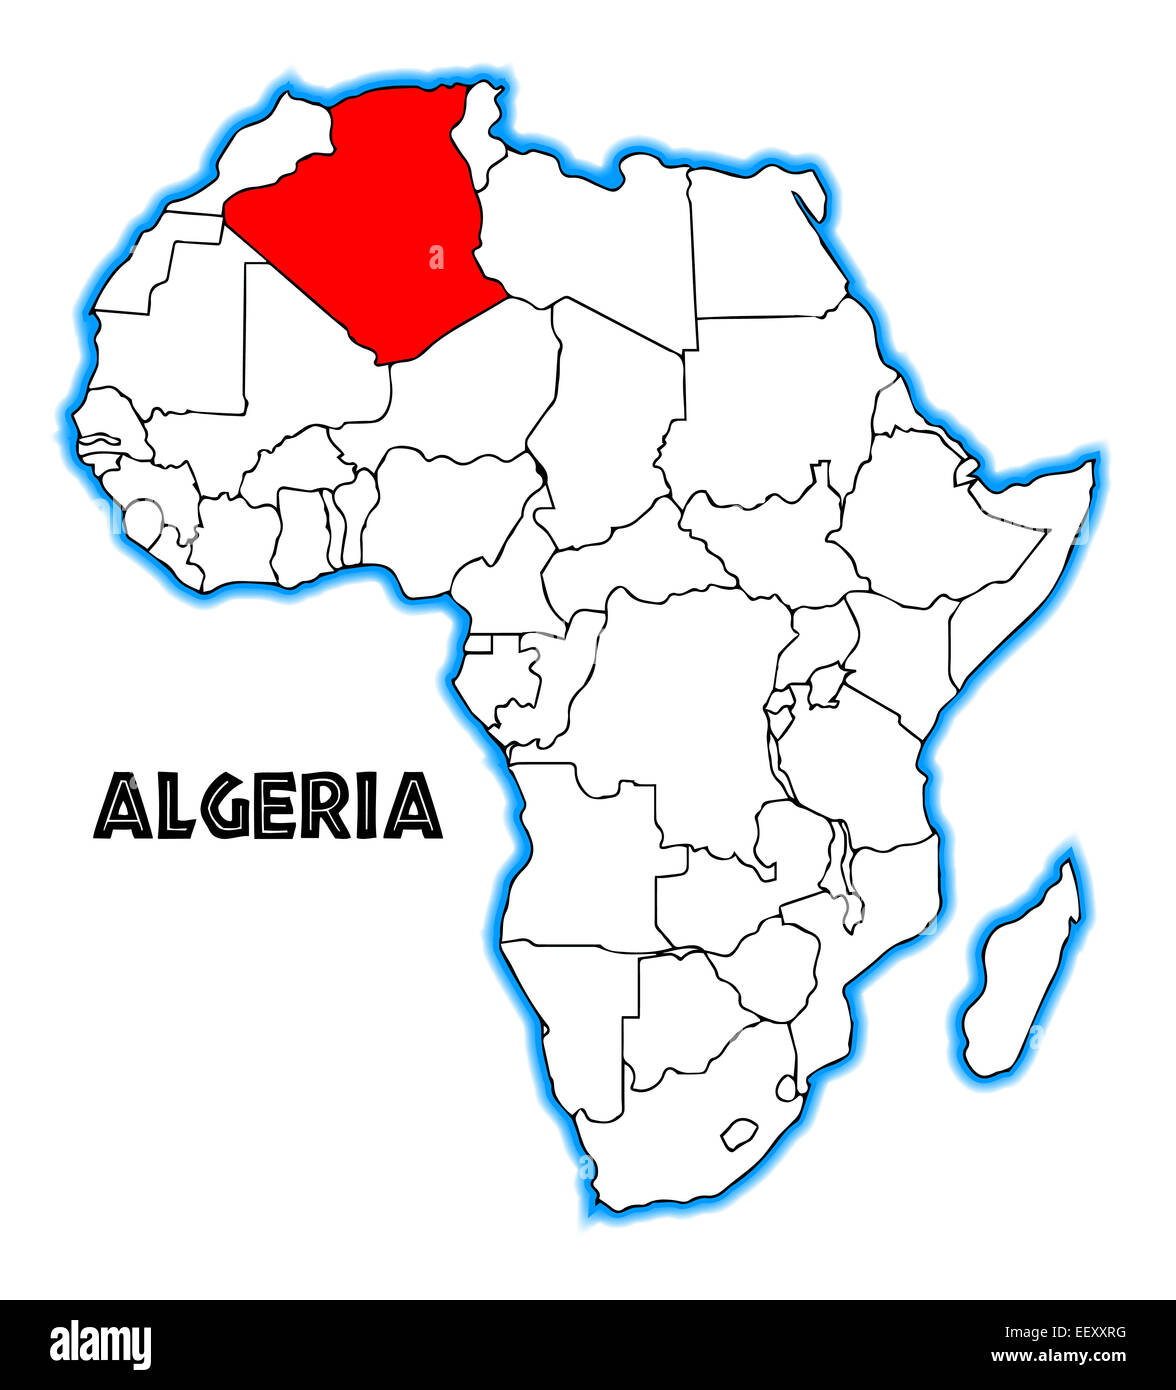 algeria on africa map Algeria Outline Inset Into A Map Of Africa Over A White Background algeria on africa map